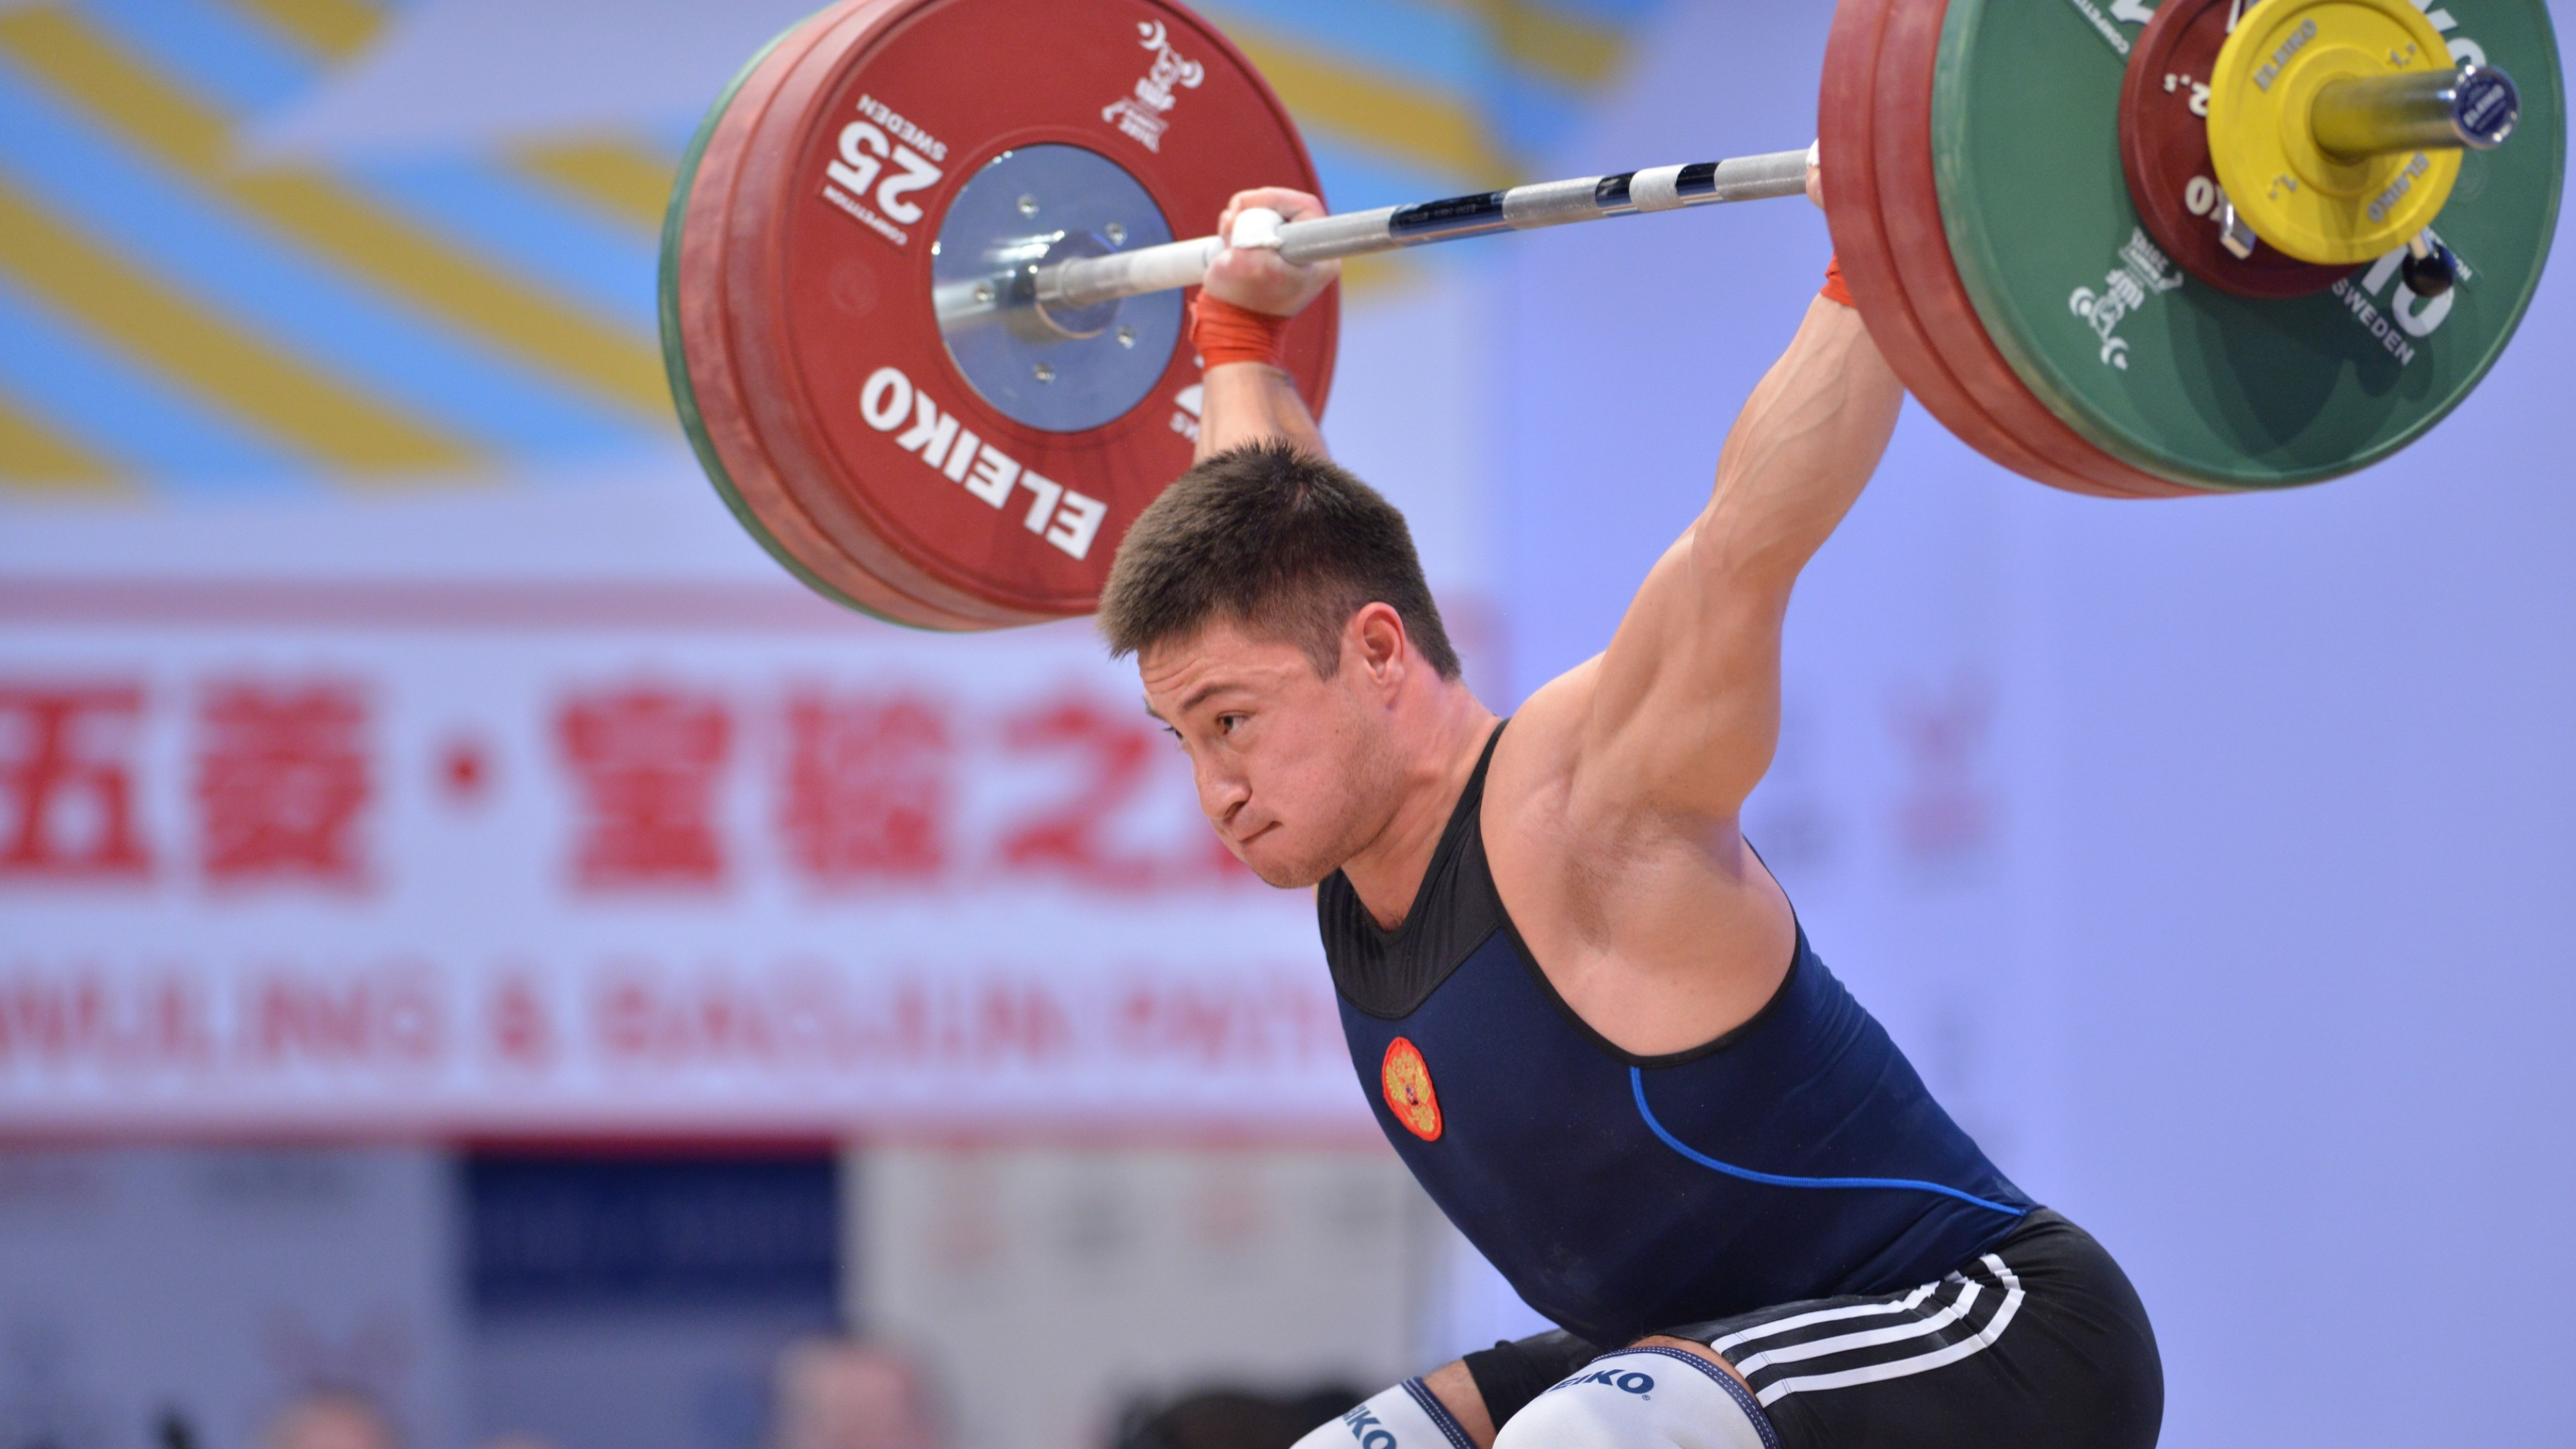 3840x2160  Wallpaper oleg chen, lifter, weightlifting